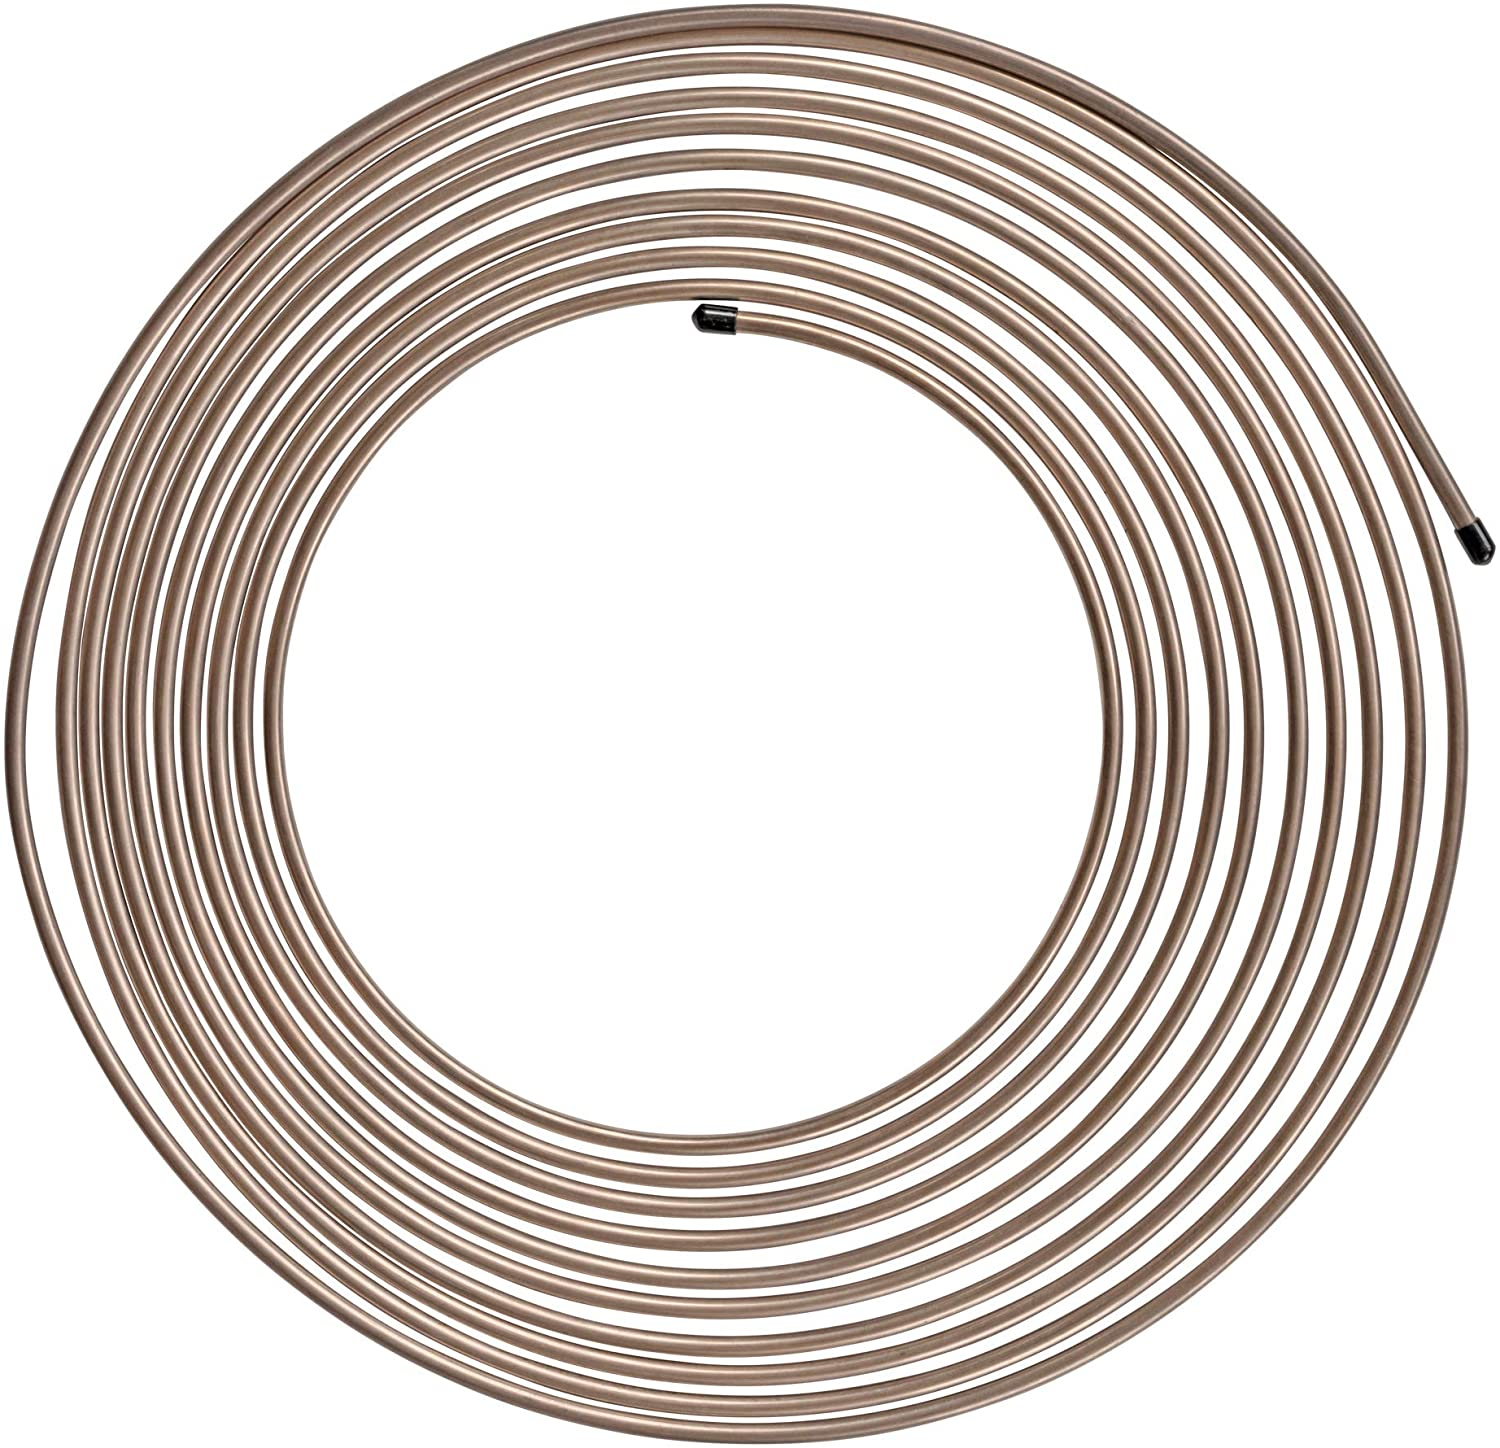 Wall Thickness Easy to hand bend 25 ft 3//16 Copper-Nickel Brake Line Complete Replacement Brake or Fuel Tubing .028 Not included fittings